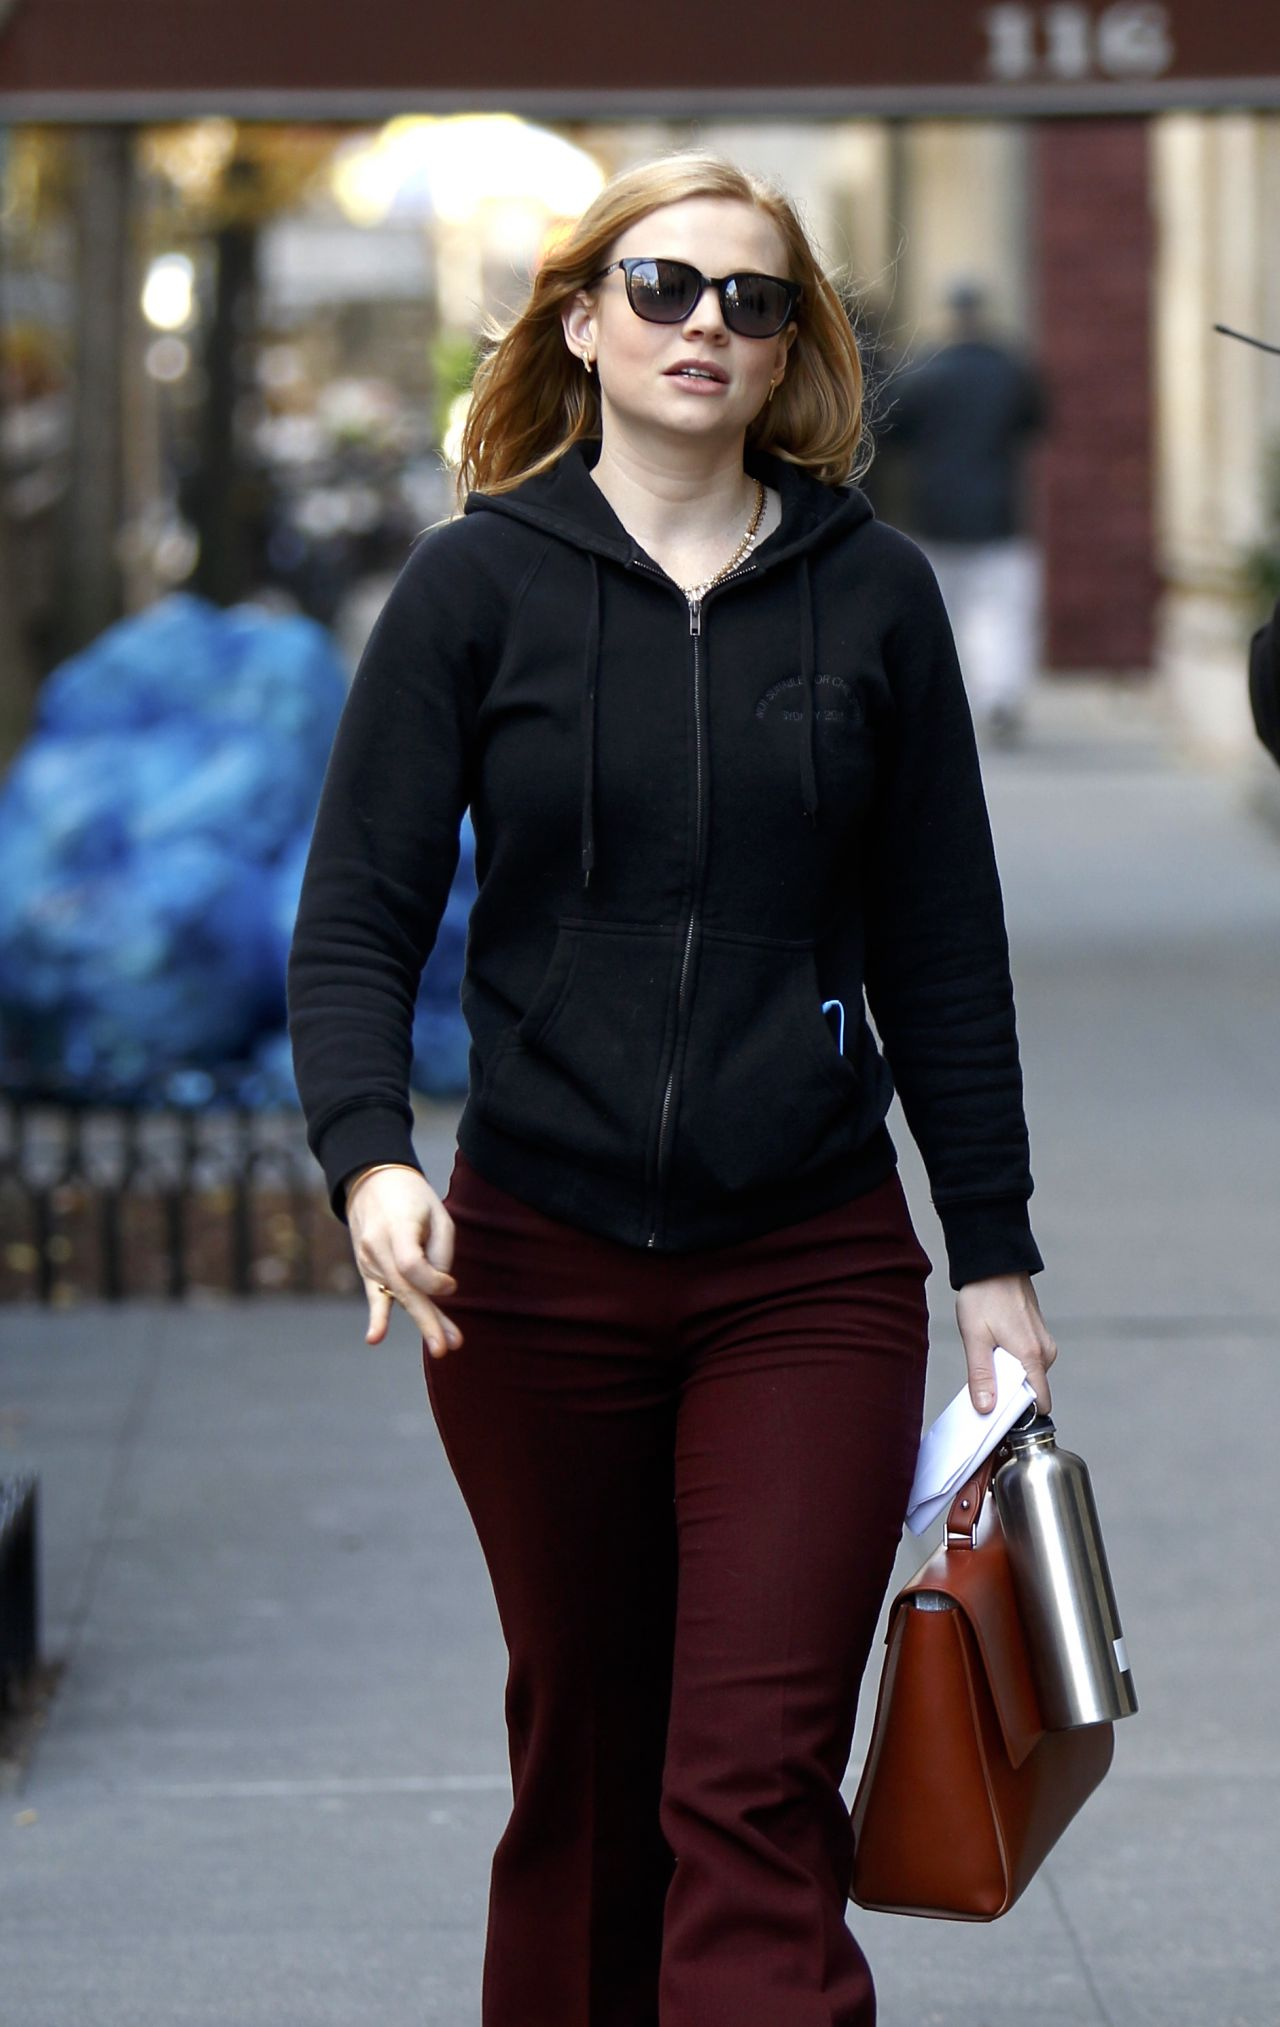 Sarah Snook Latest Photos Celebmafia